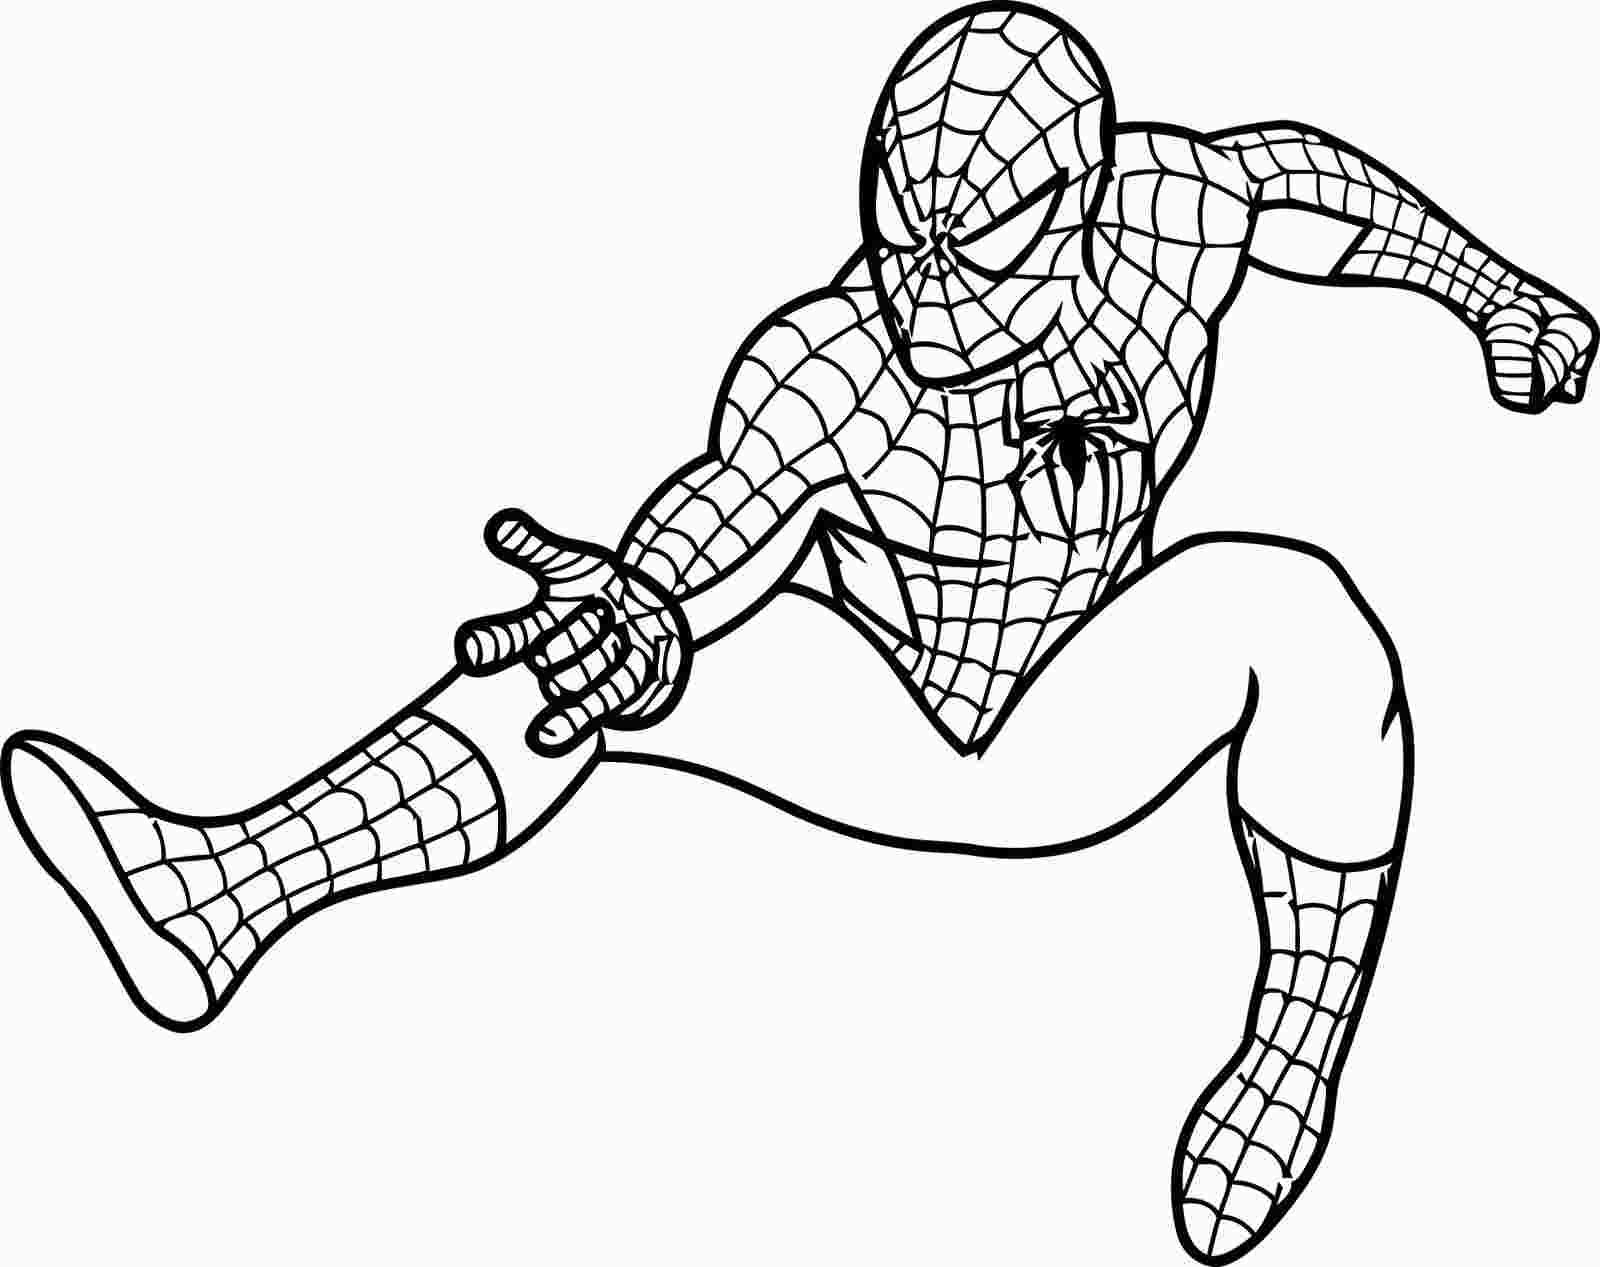 Coloring Spider Man Black And White In 2020 Superhero Coloring Pages Turtle Coloring Pages Spiderman Coloring